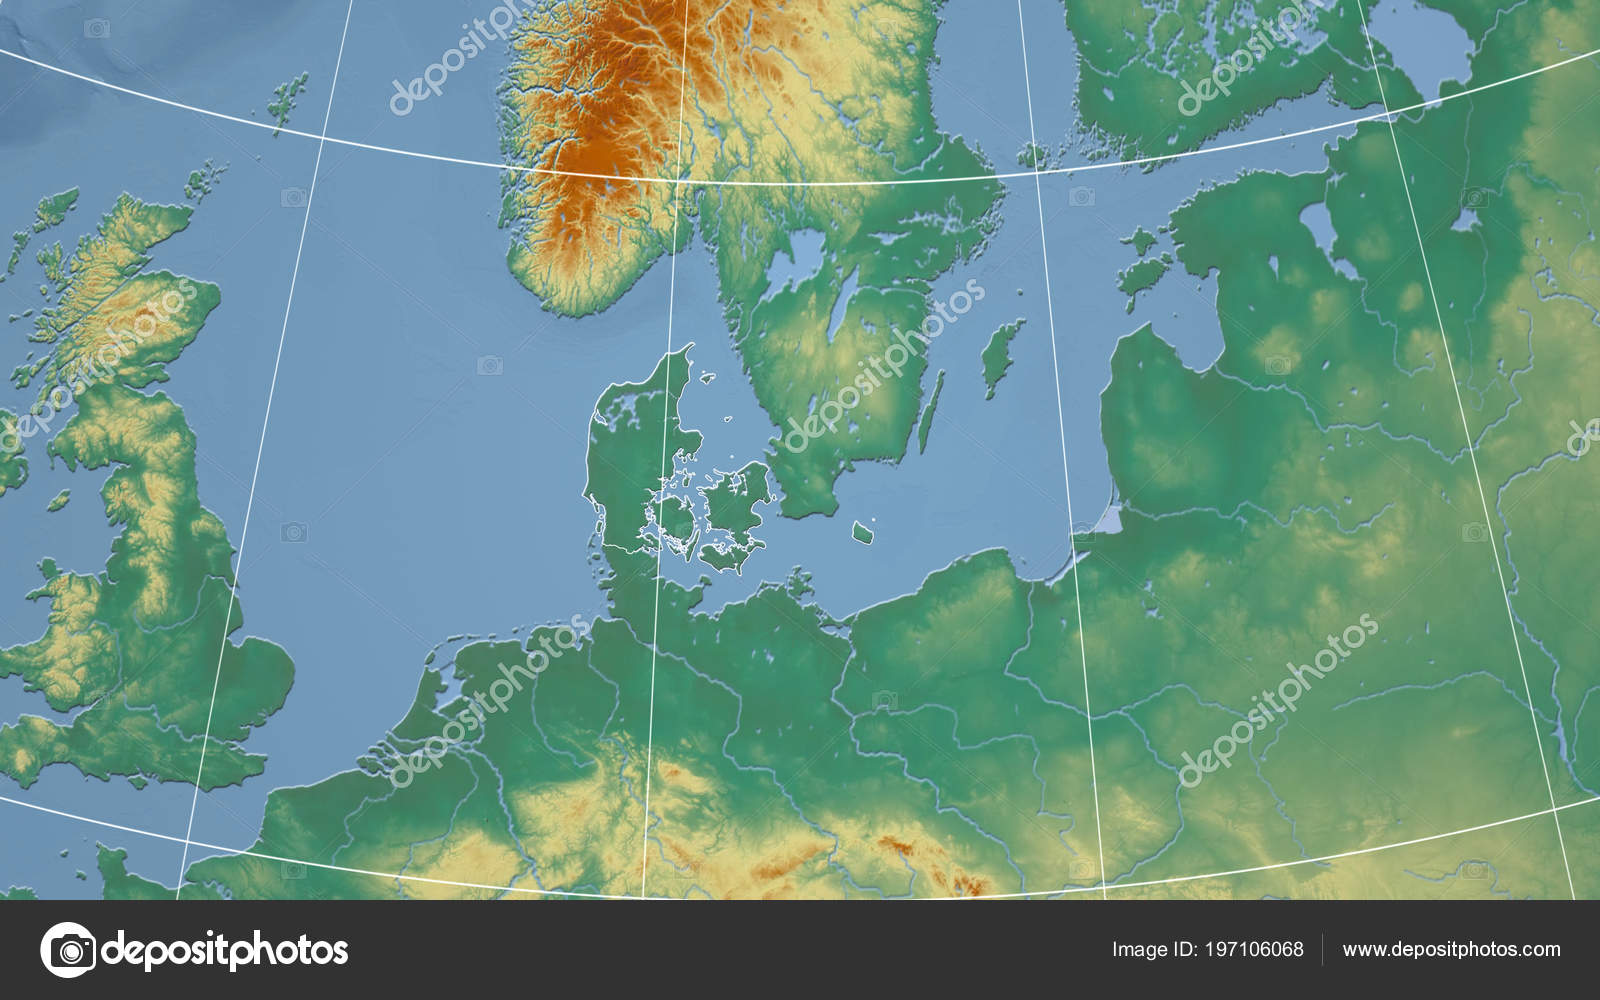 Denmark Topographic Map.Denmark Neighborhood Distant Perspective Outline Country Topographic